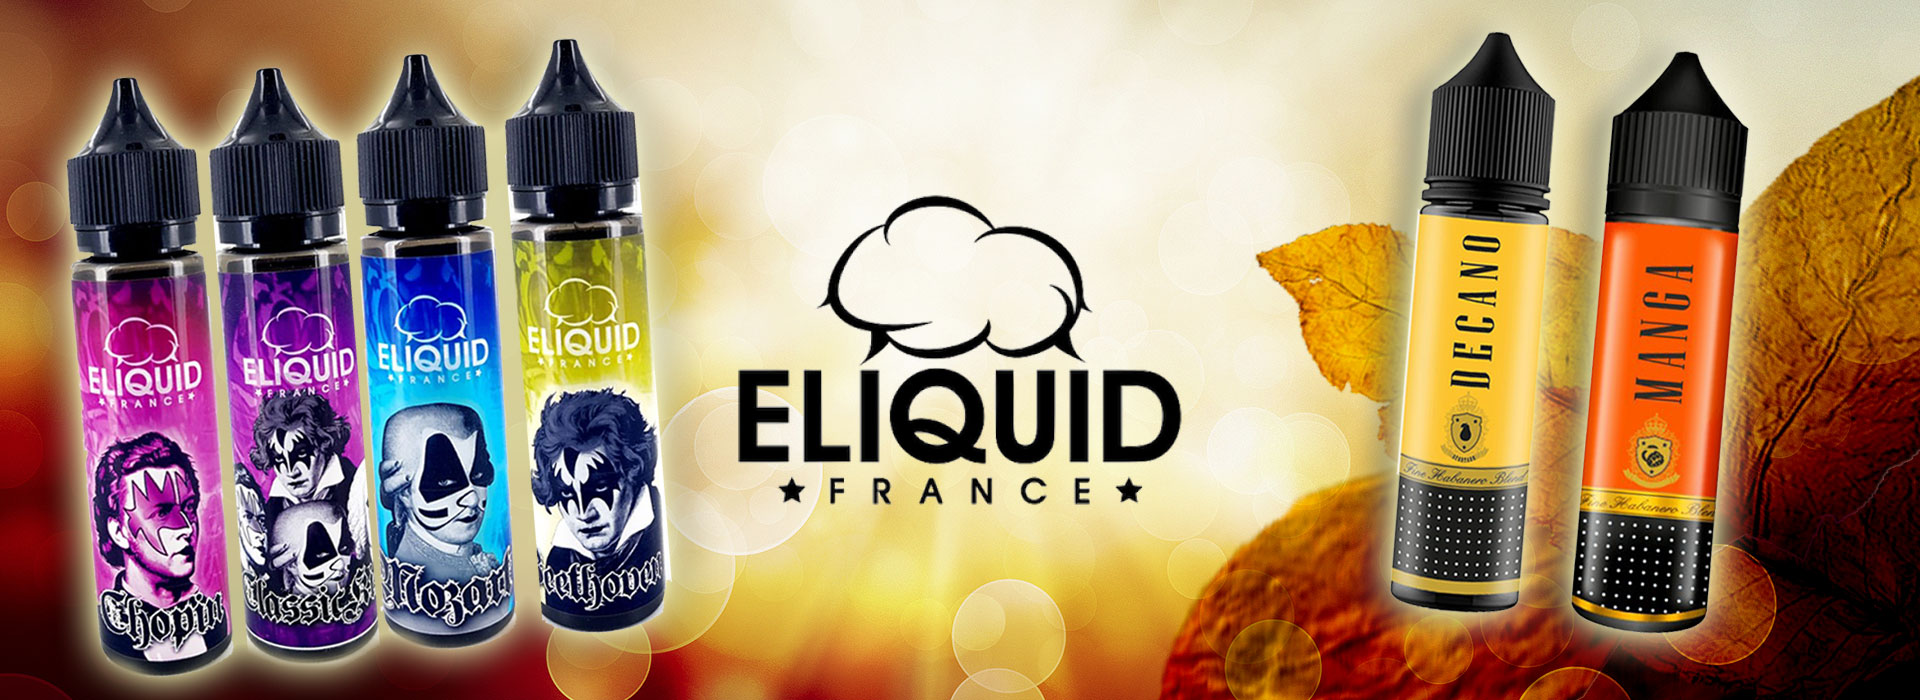 ELIQUID FRANCE MANGO DECANO